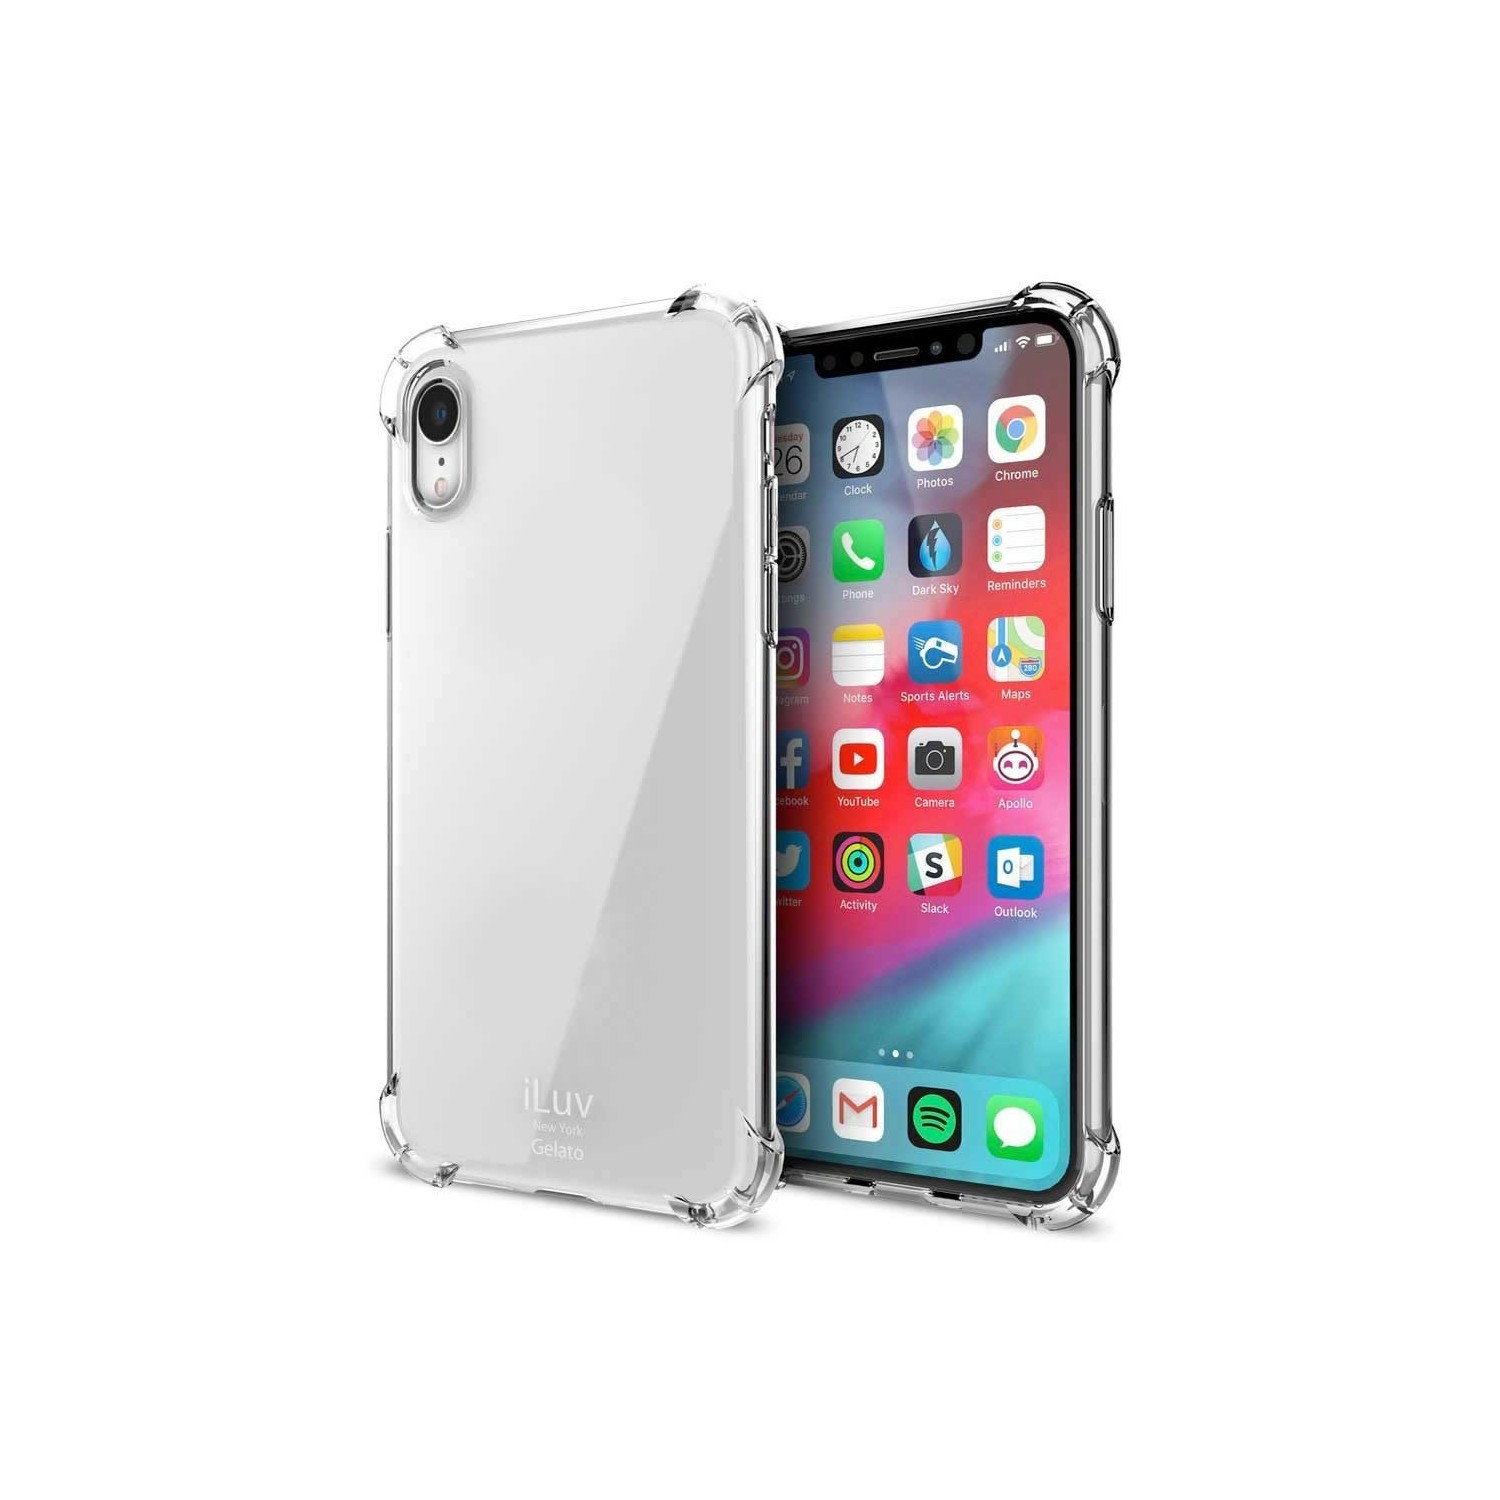 Case - iLuv Gelato for iPhone XR Case - Clear